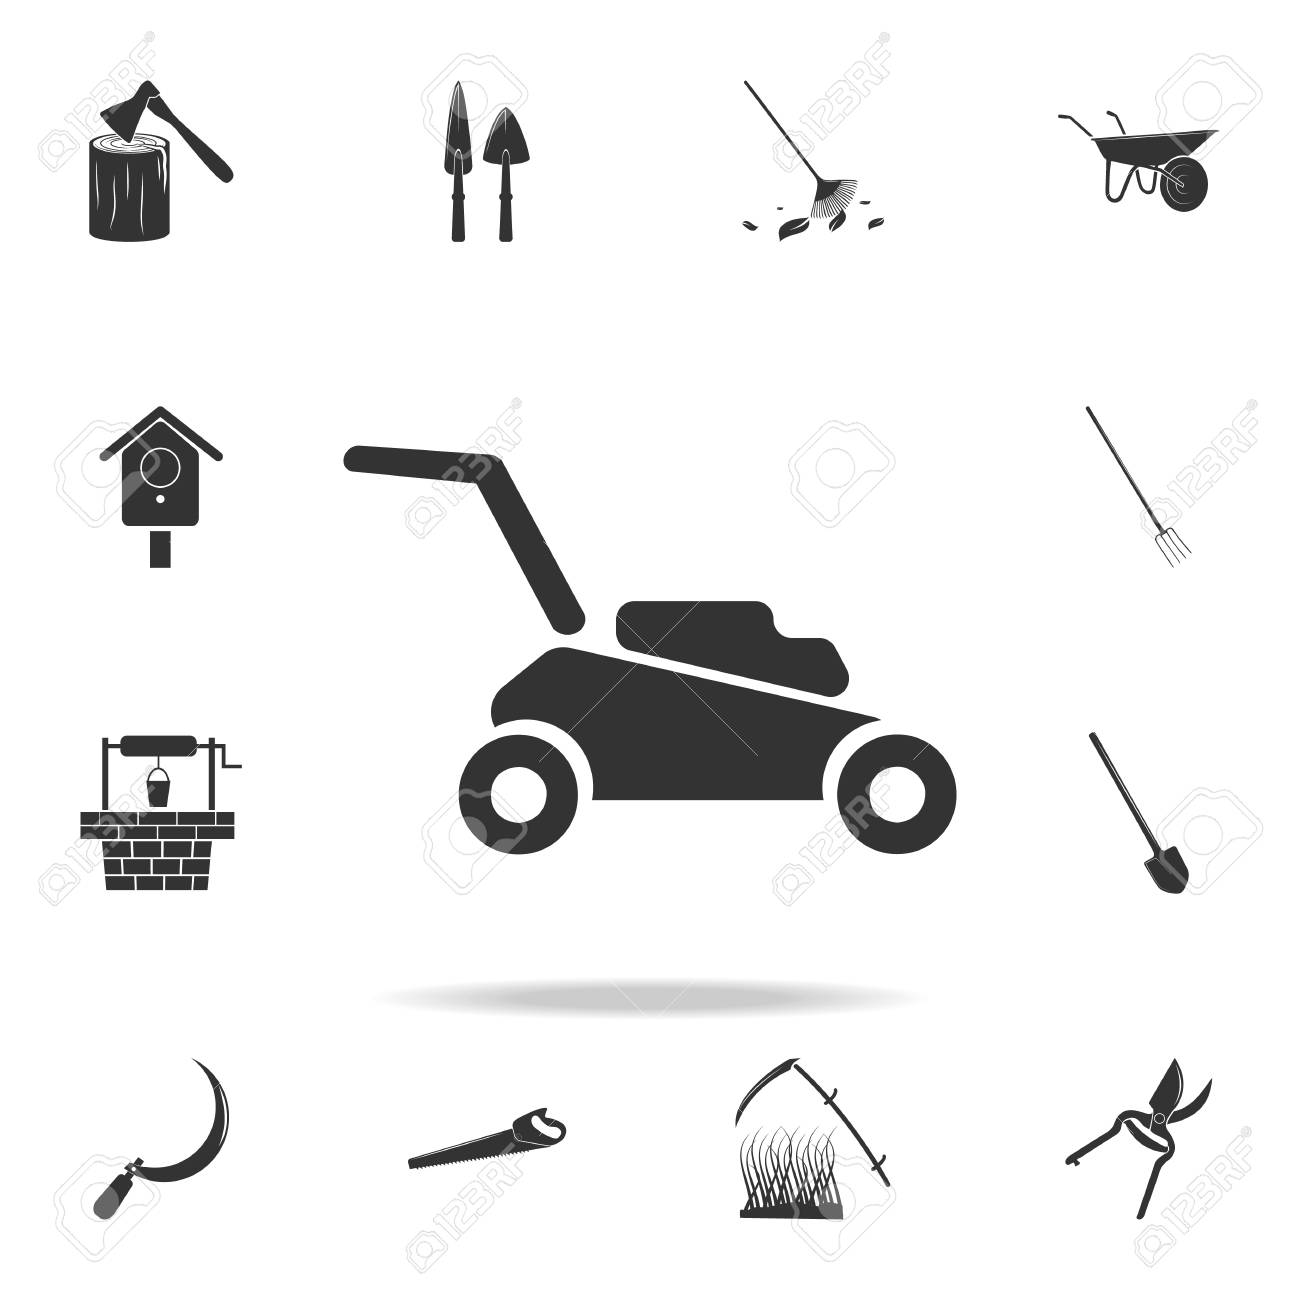 lawn mower icon. Detailed set of garden tools and agriculture...